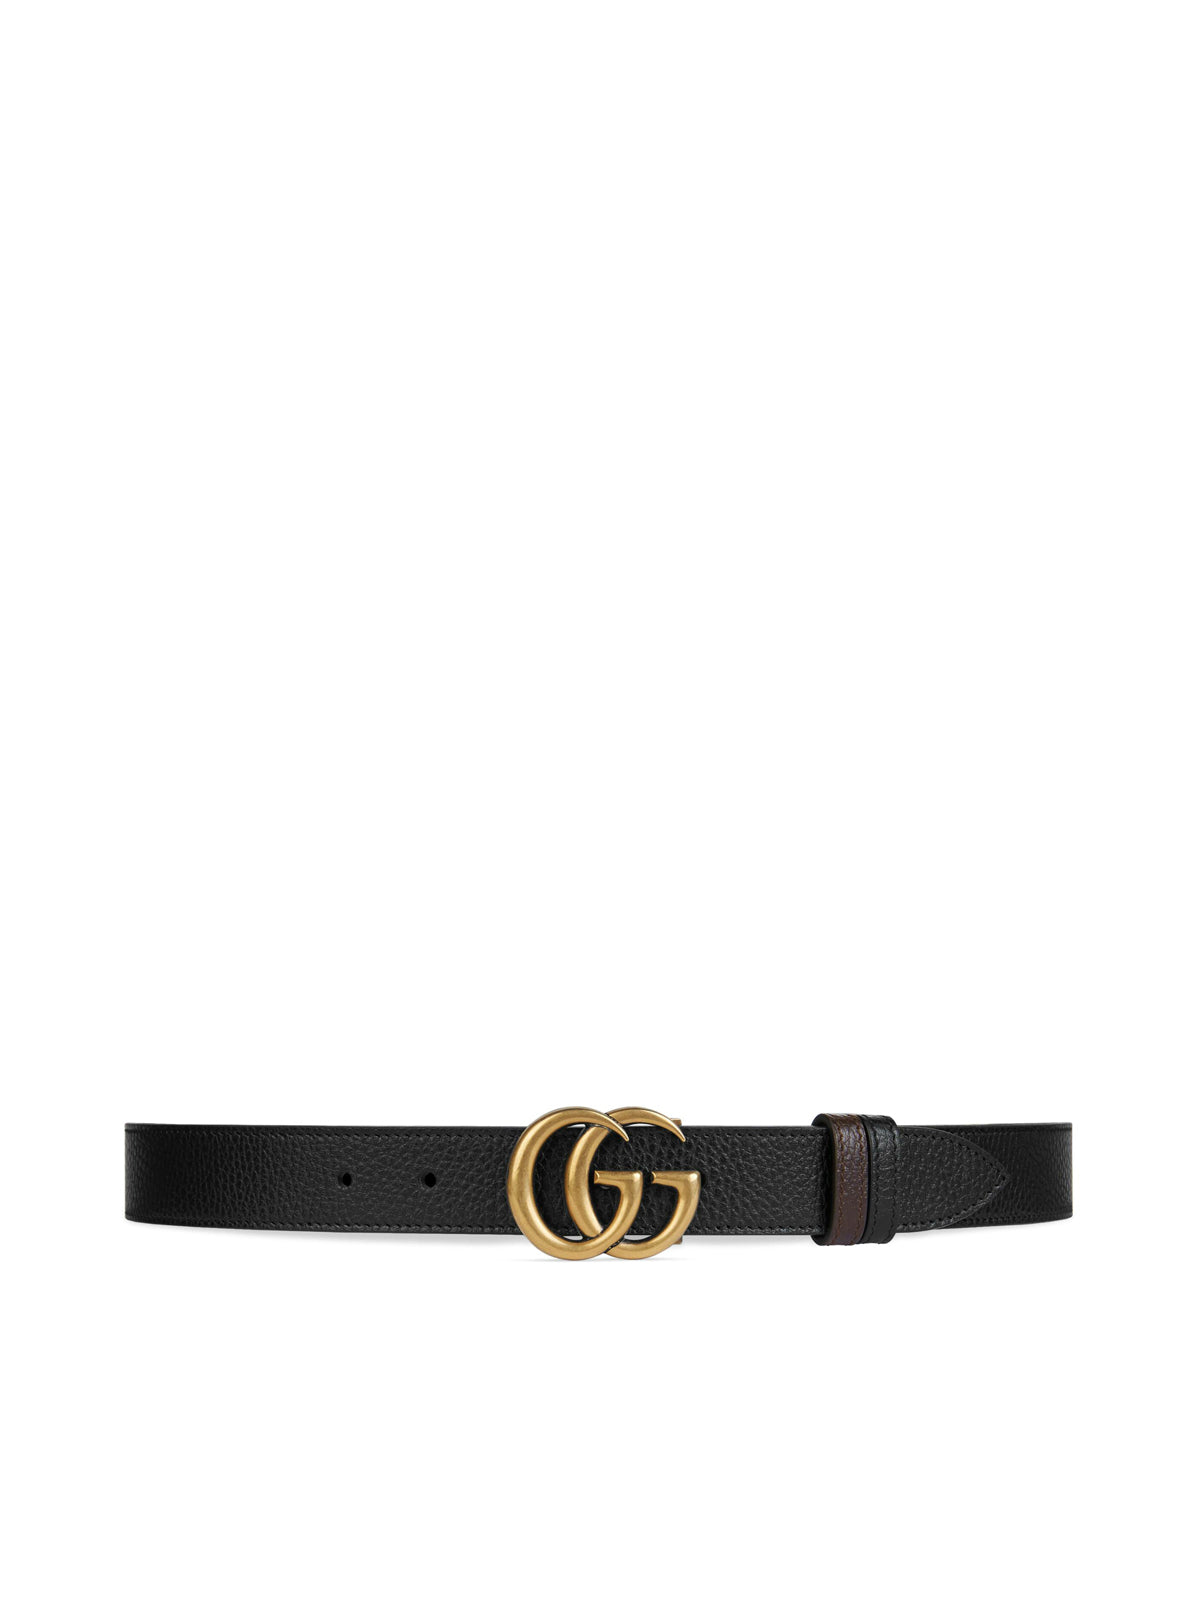 GG Marmont reversible belt